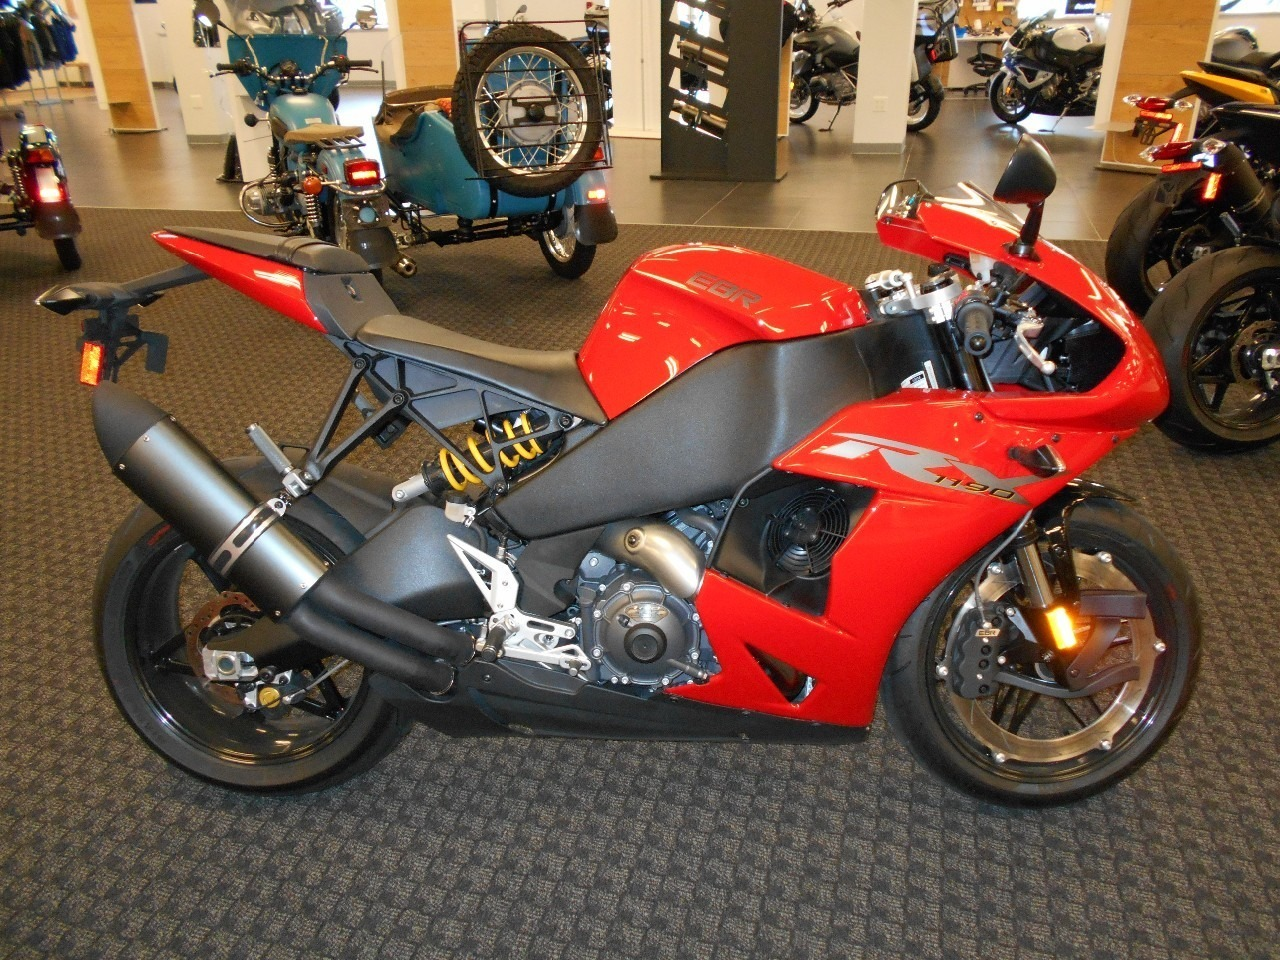 2014 EBR   ERIC BUELL RACING 1190 RX, motorcycle listing